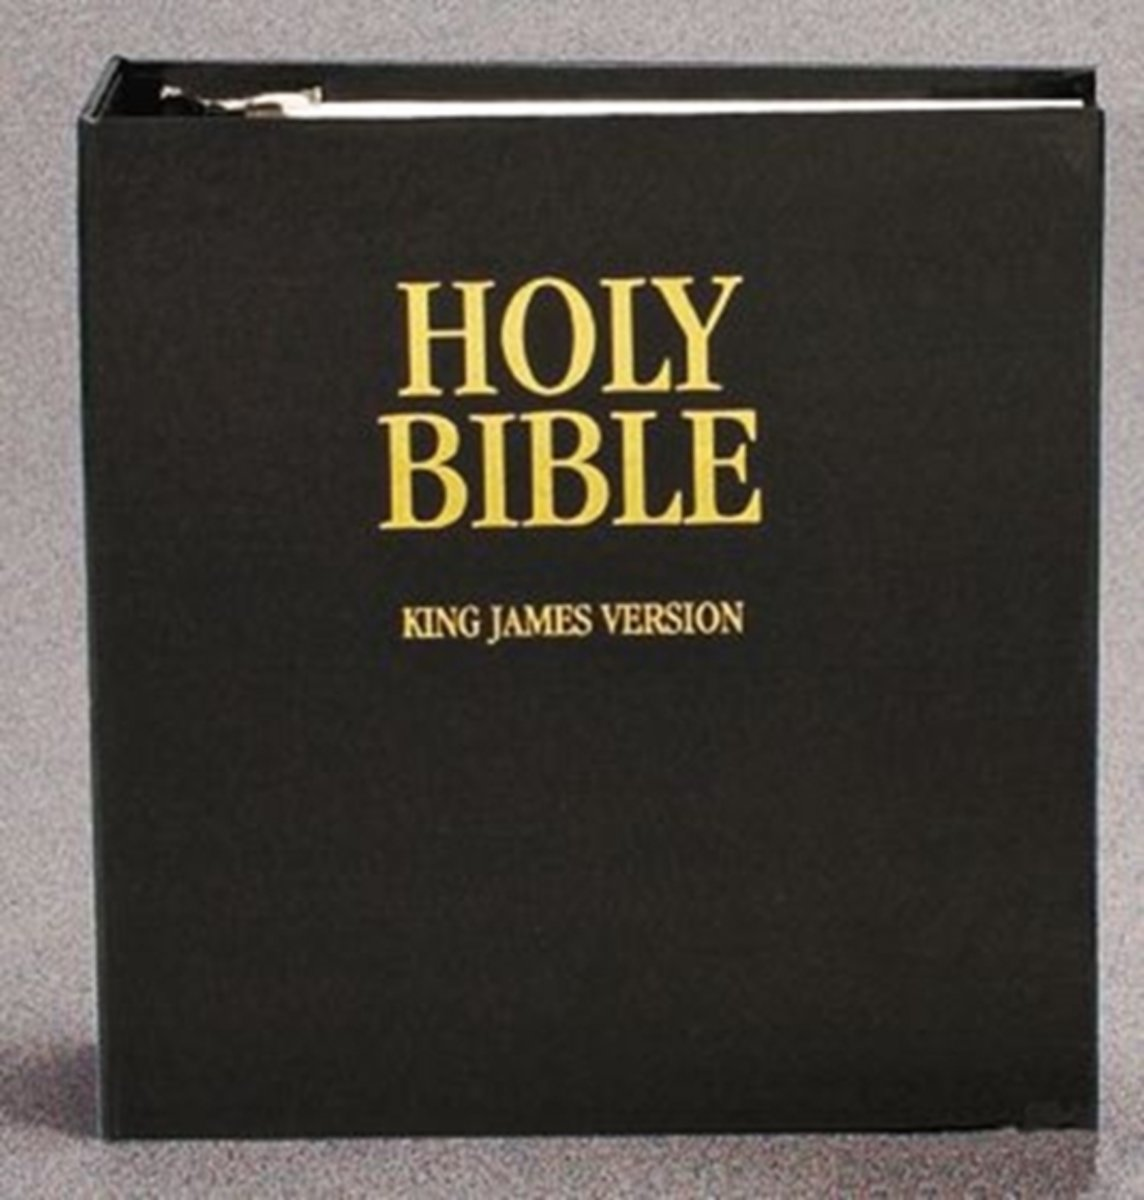 Loose Leaf Bible-KJV